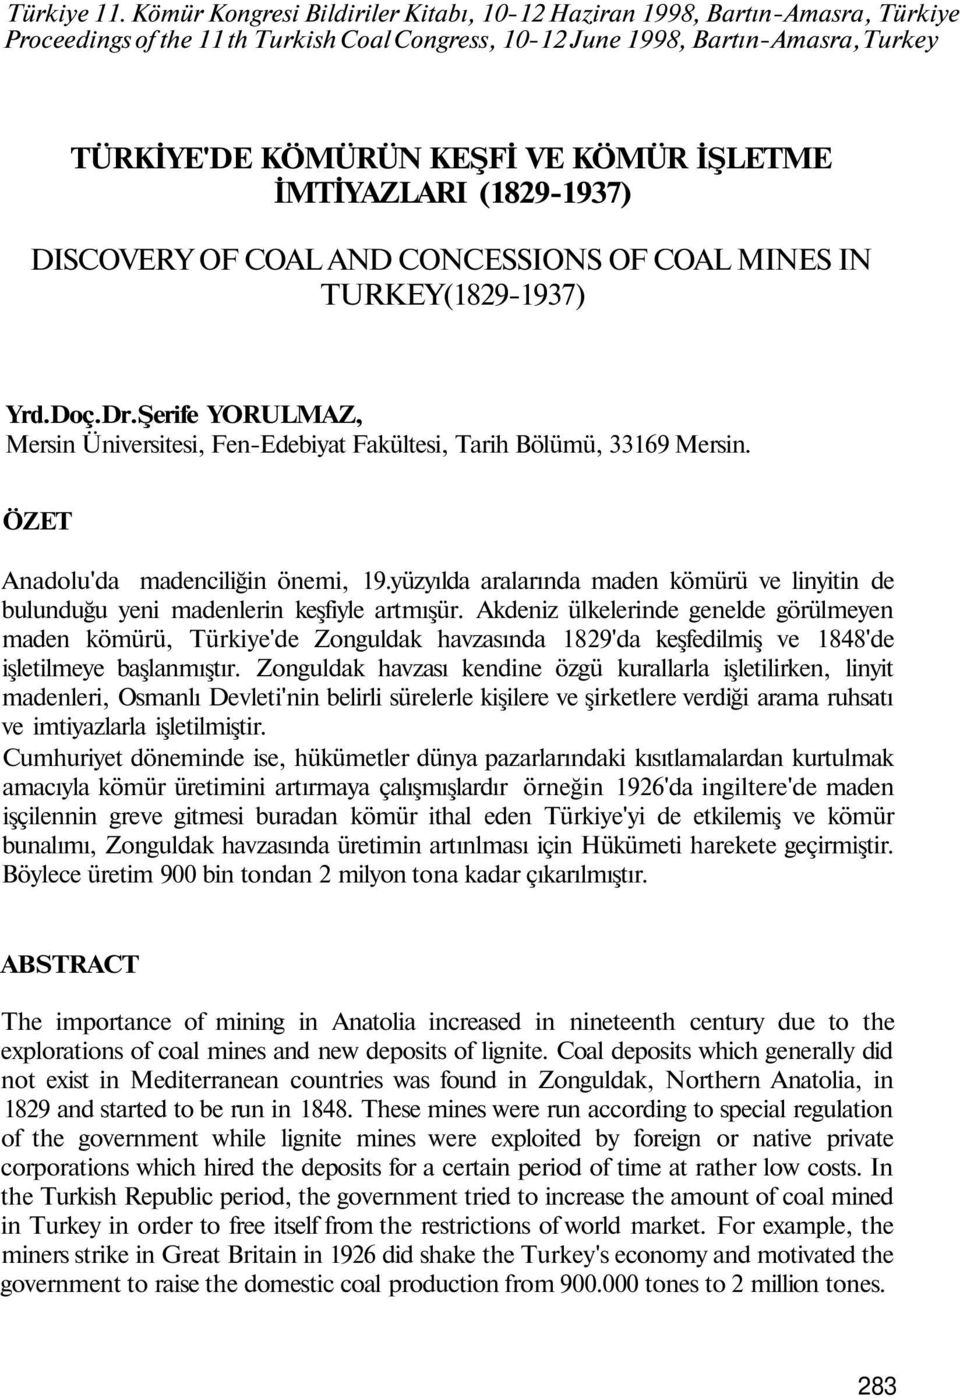 İŞLETME İMTİYAZLARI (1829-1937) DISCOVERY OF COAL AND CONCESSIONS OF COAL MINES IN TURKEY(1829-1937) Yrd.Doç.Dr.